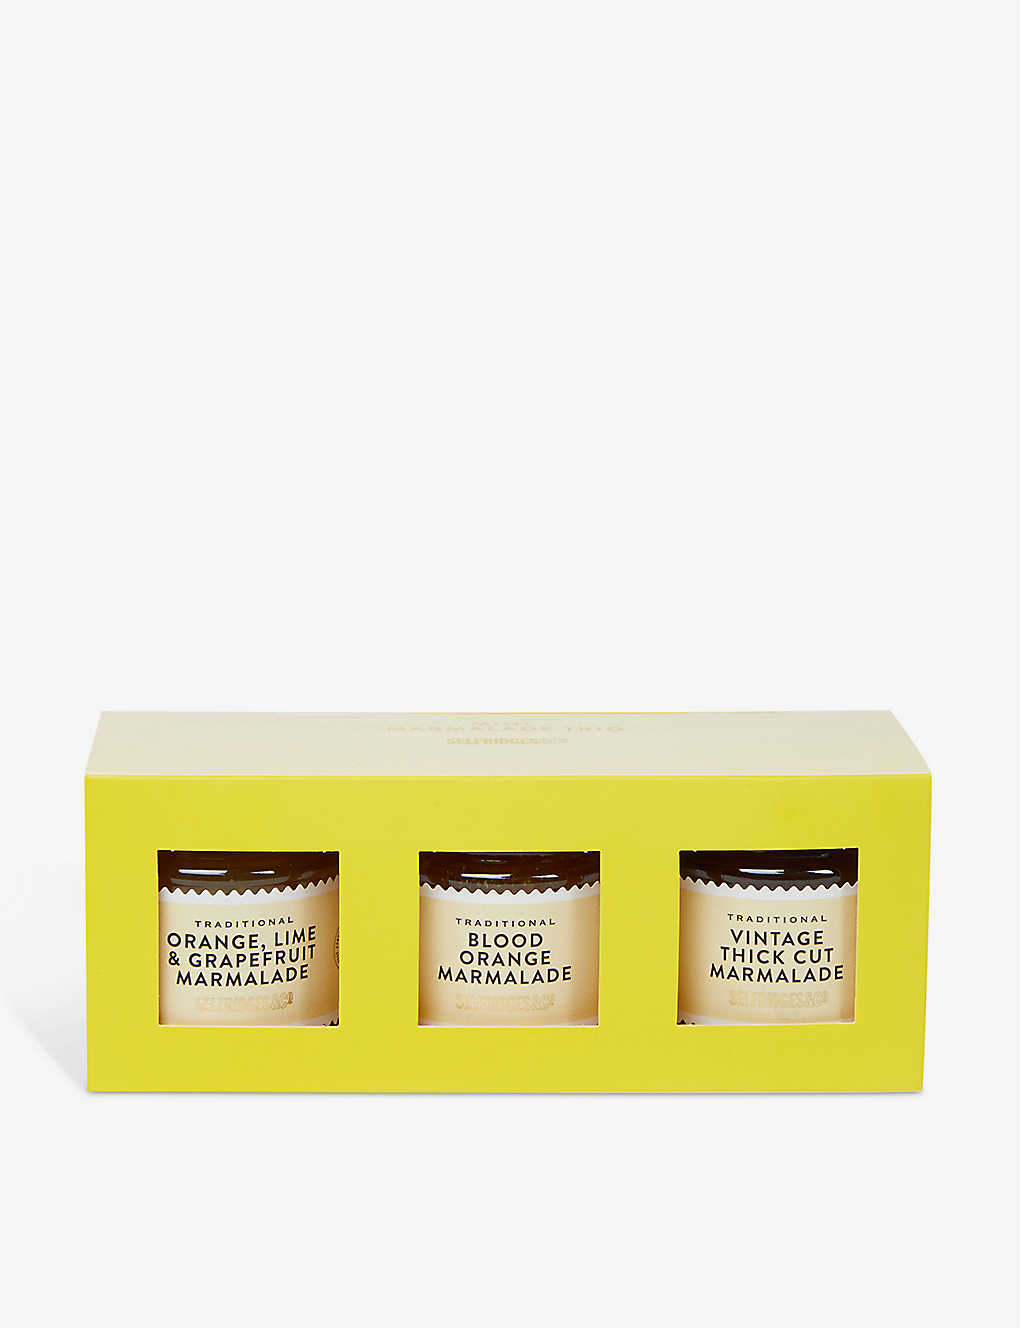 SELFRIDGES SELECTION: Traditional Marmalade Trio box of three